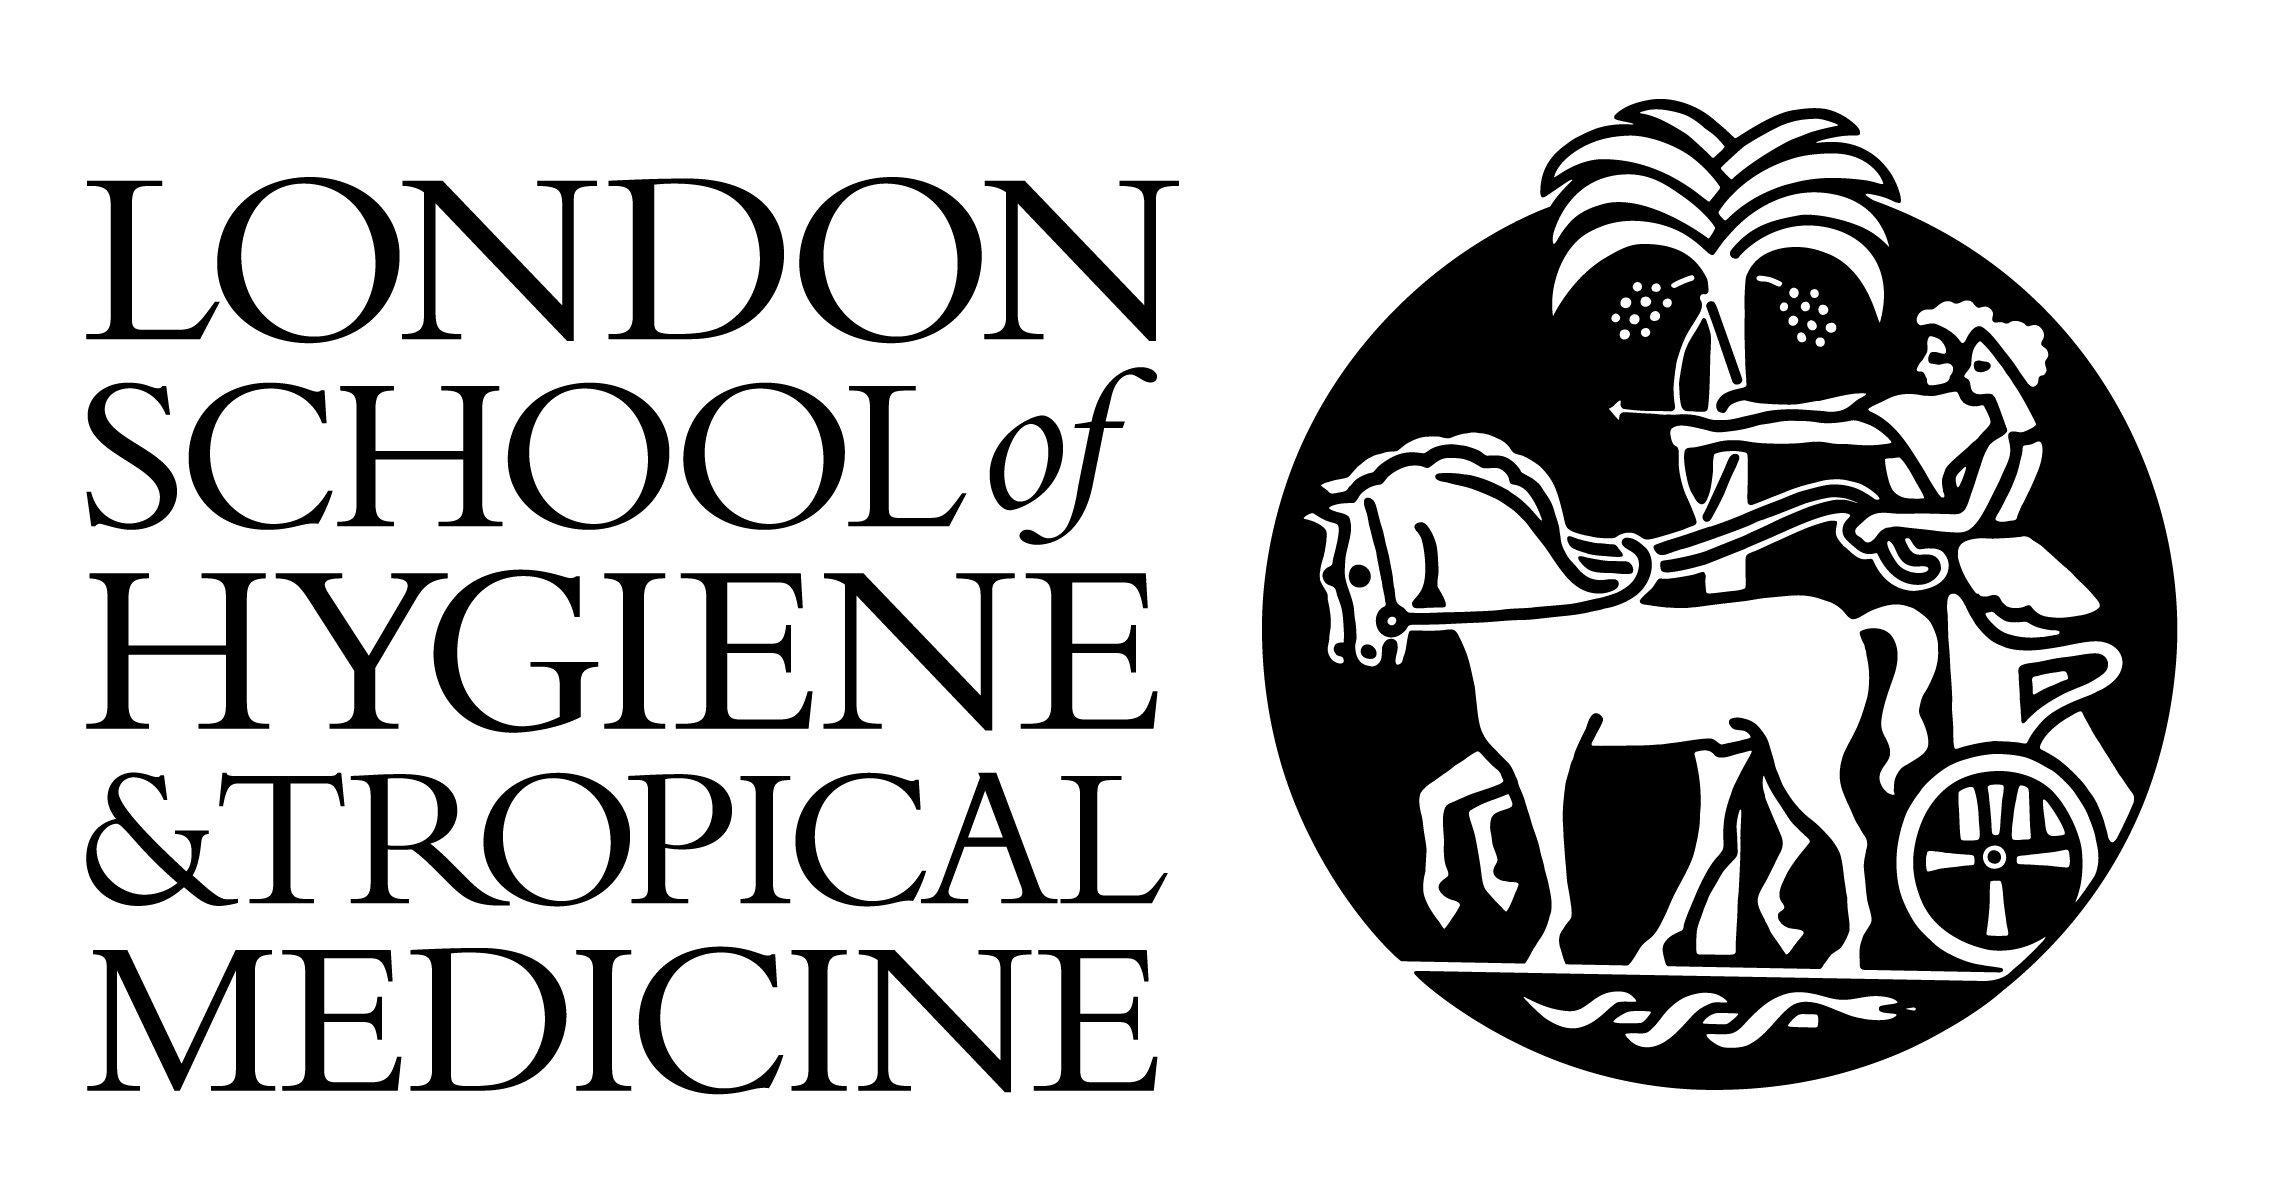 Lieutenant-Colonel Henry Kirkpatrick Scholarship - London School of Hygiene & Tropical Medicine (LSHTM)